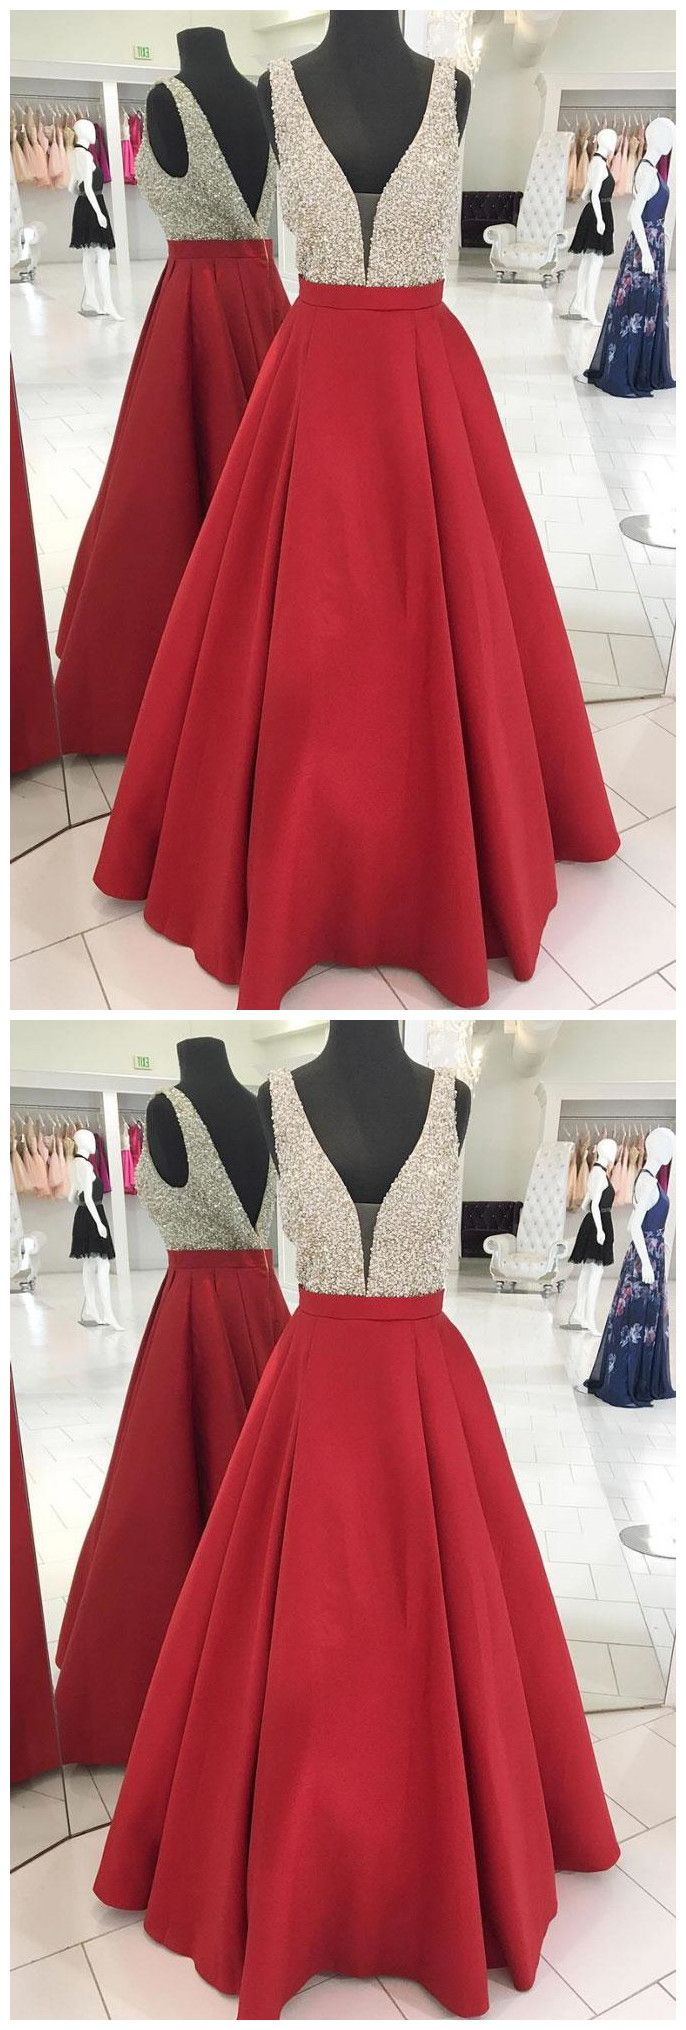 Sparkly sequins red long prom dress evening dress p promdress